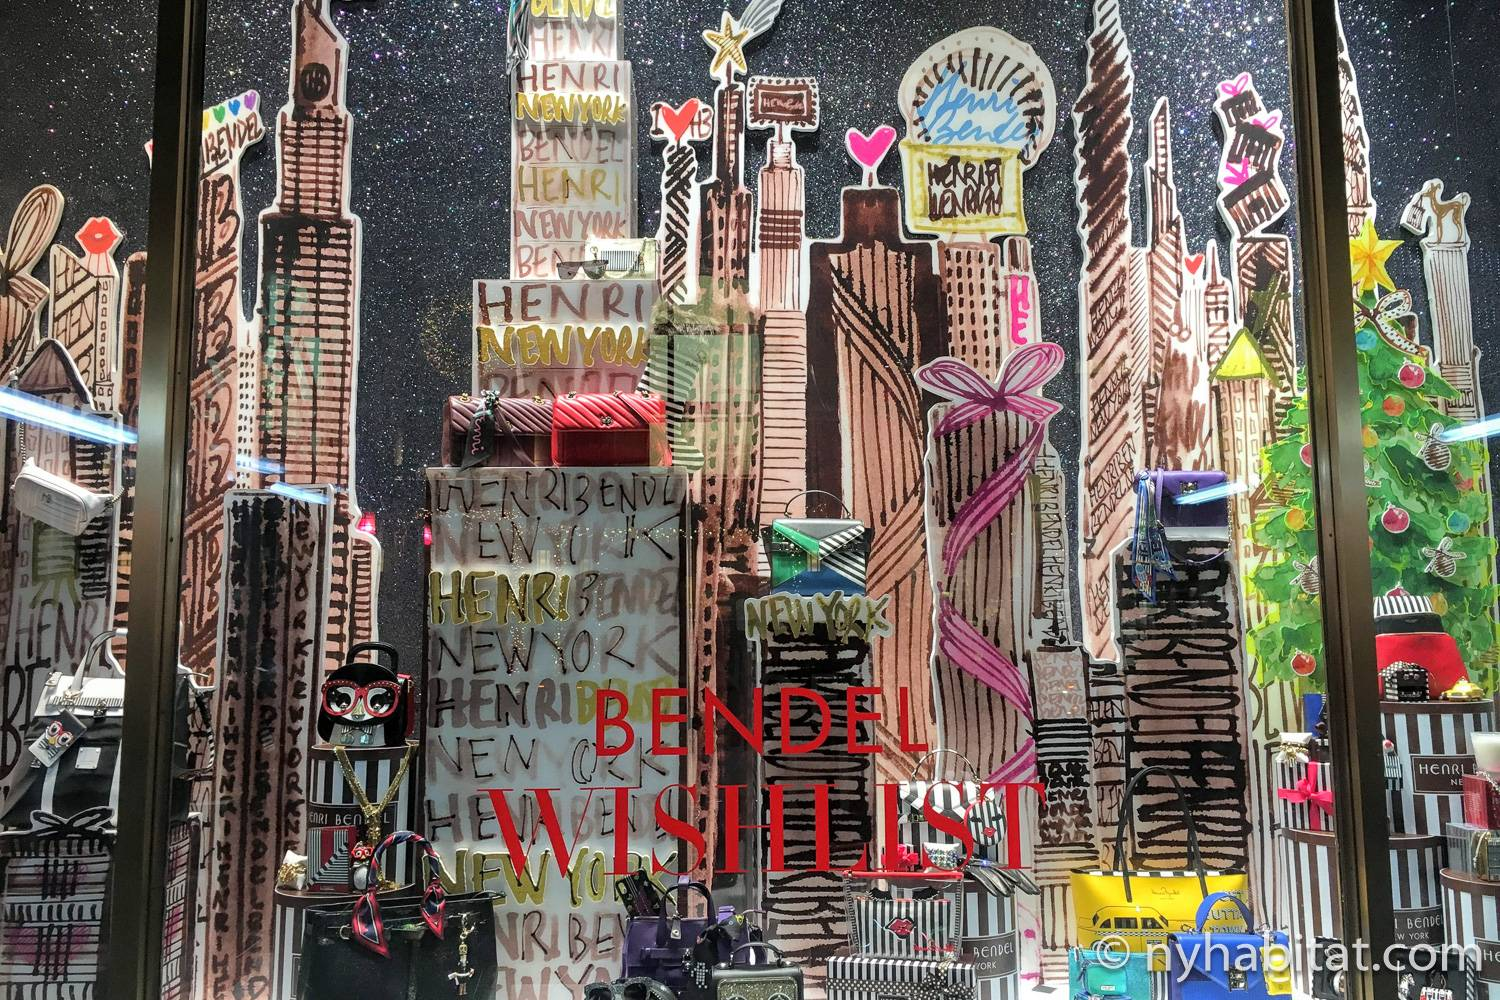 Image of Henri Bendel's 2018 holiday window with New York skyline constructed from hatboxes.